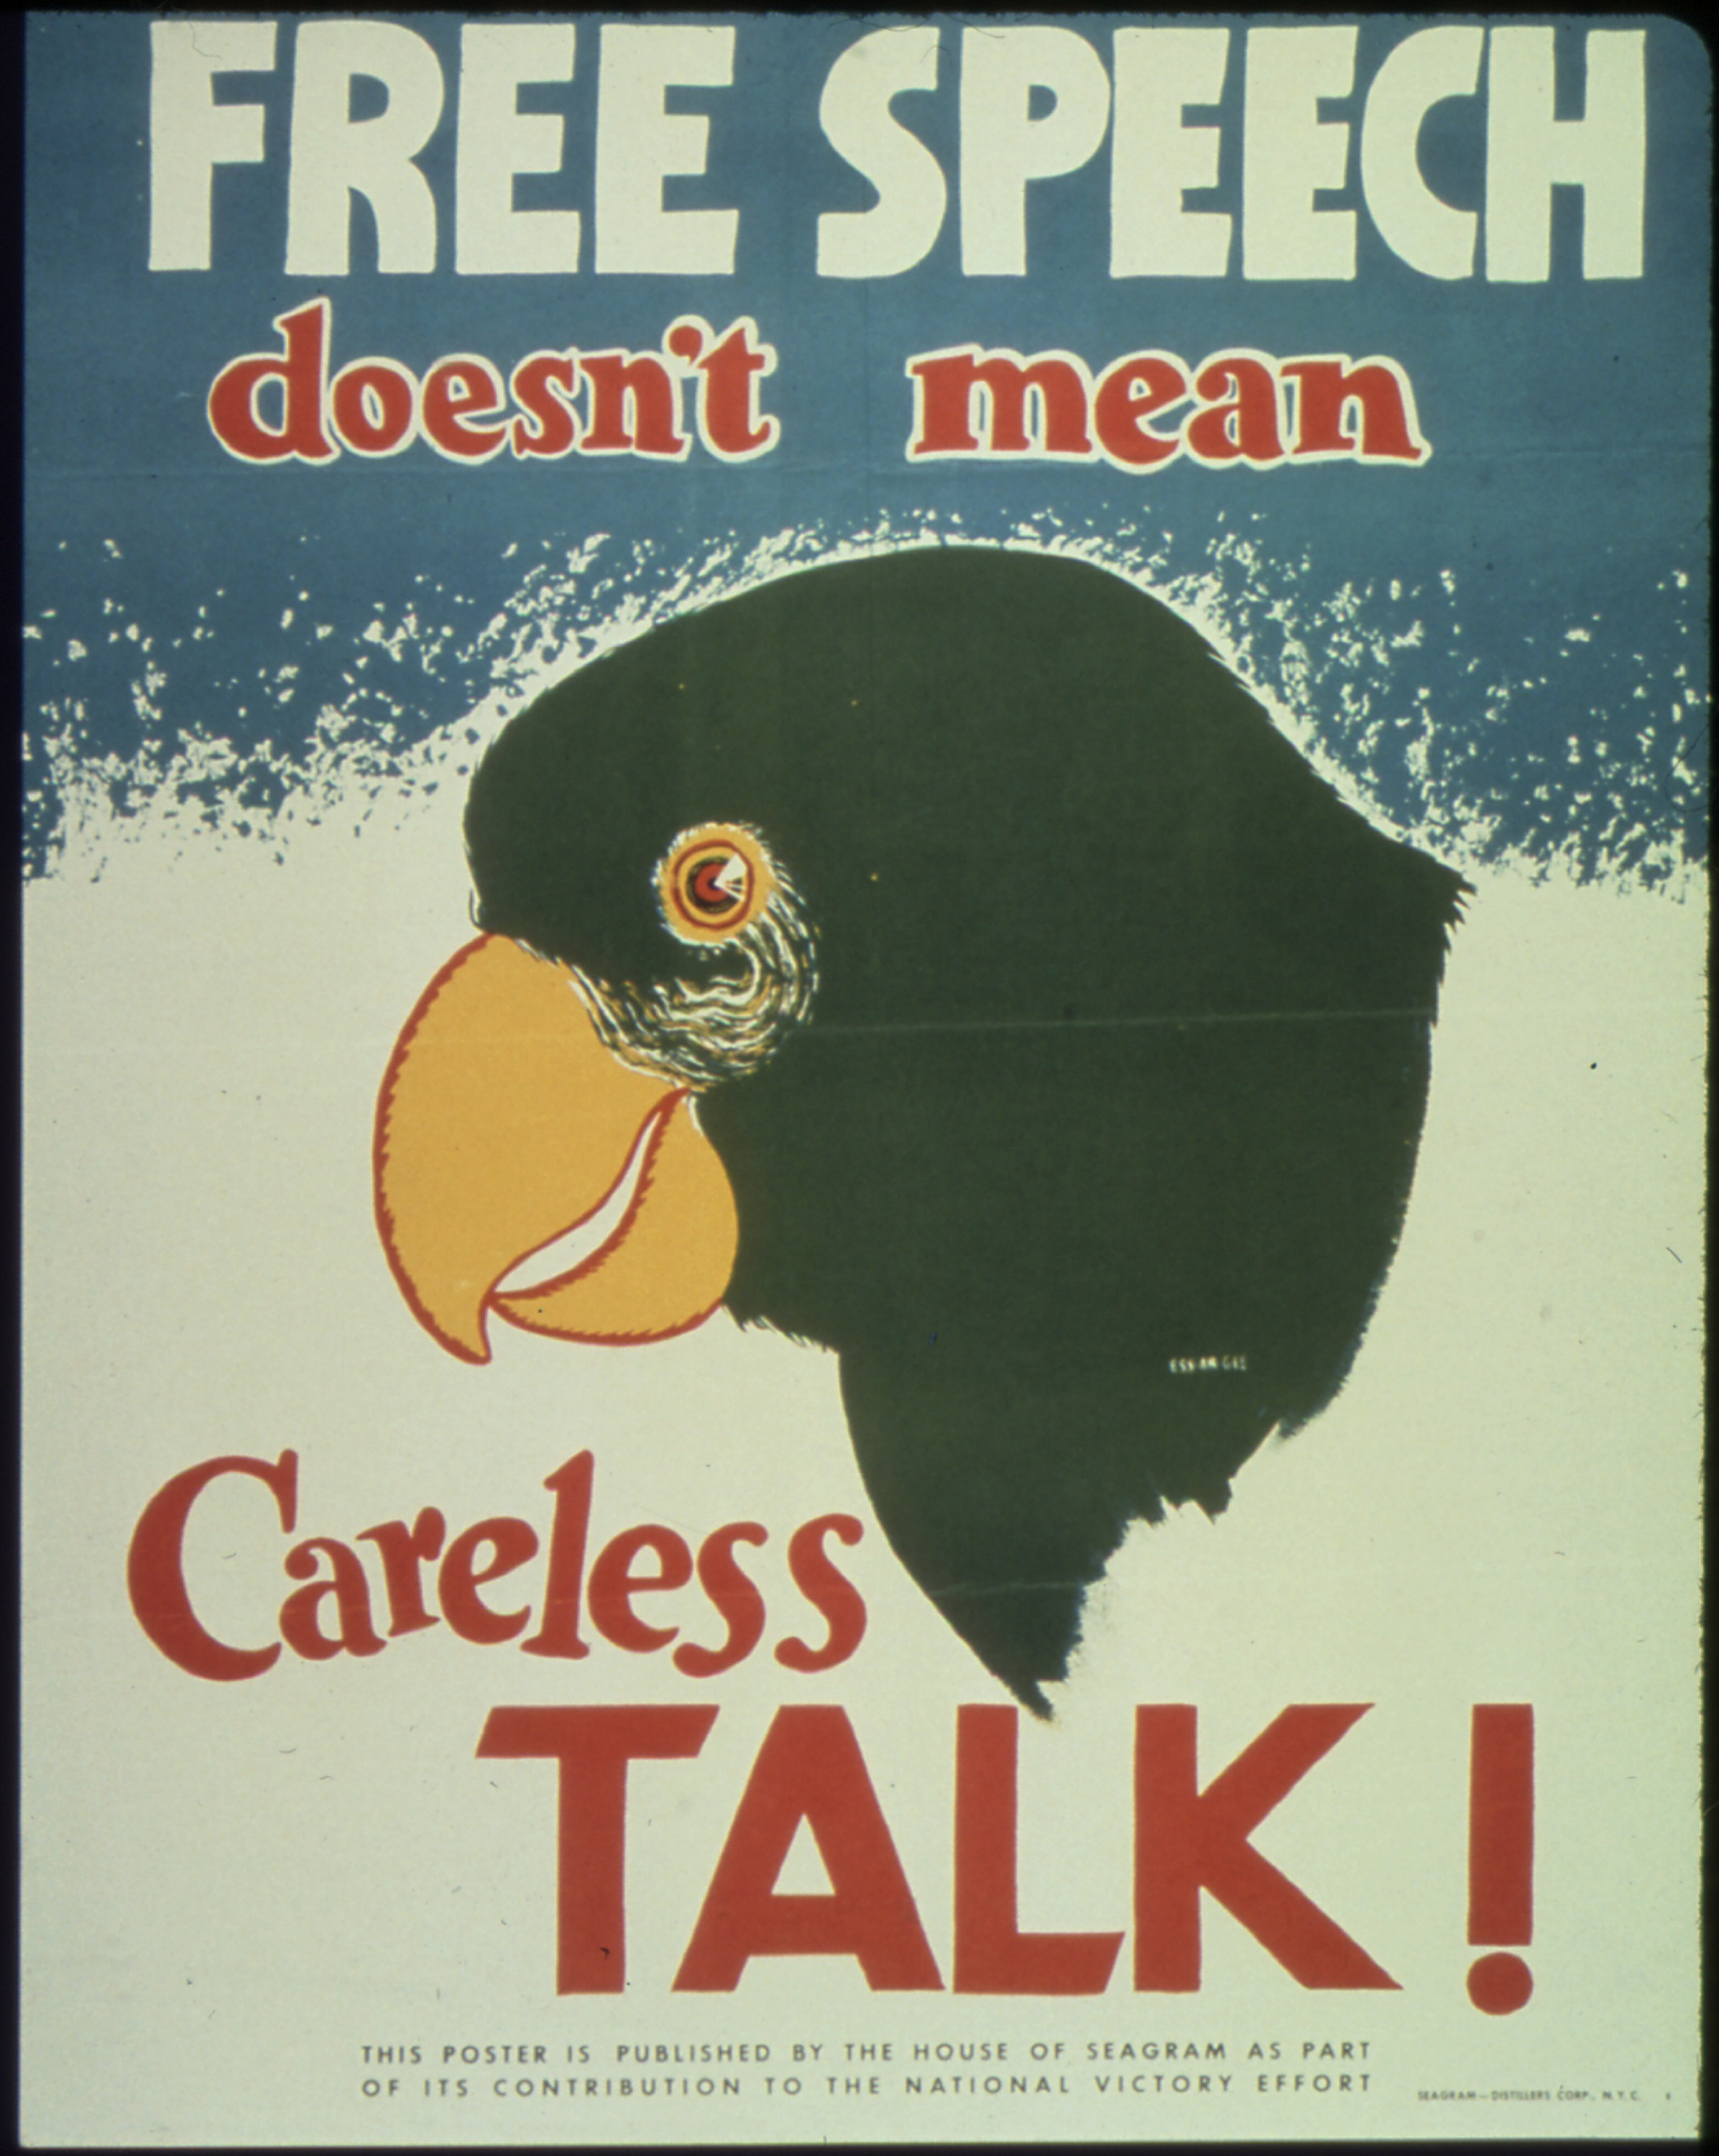 Just Because You Can Say It Doesn't Mean... (By Unknown or not provided (U.S. National Archives and Records Administration) [Public domain], via Wikimedia Commons)